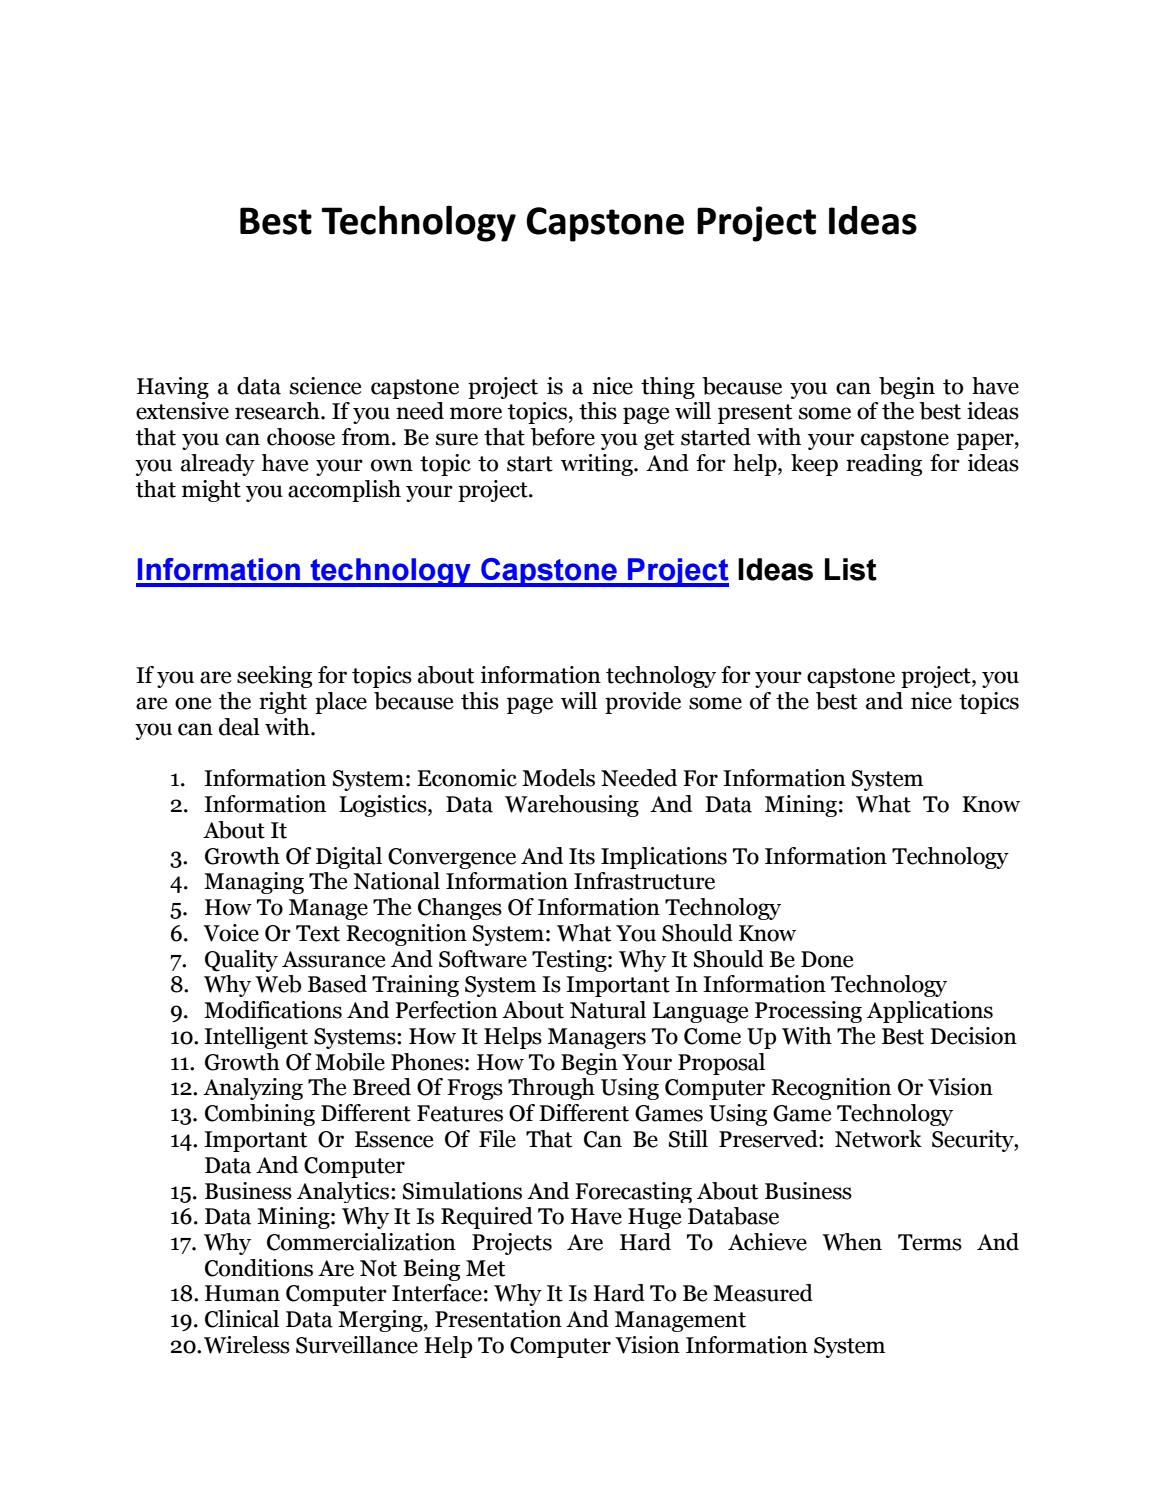 How To Write A Capstone Project Outline: Steps and Example